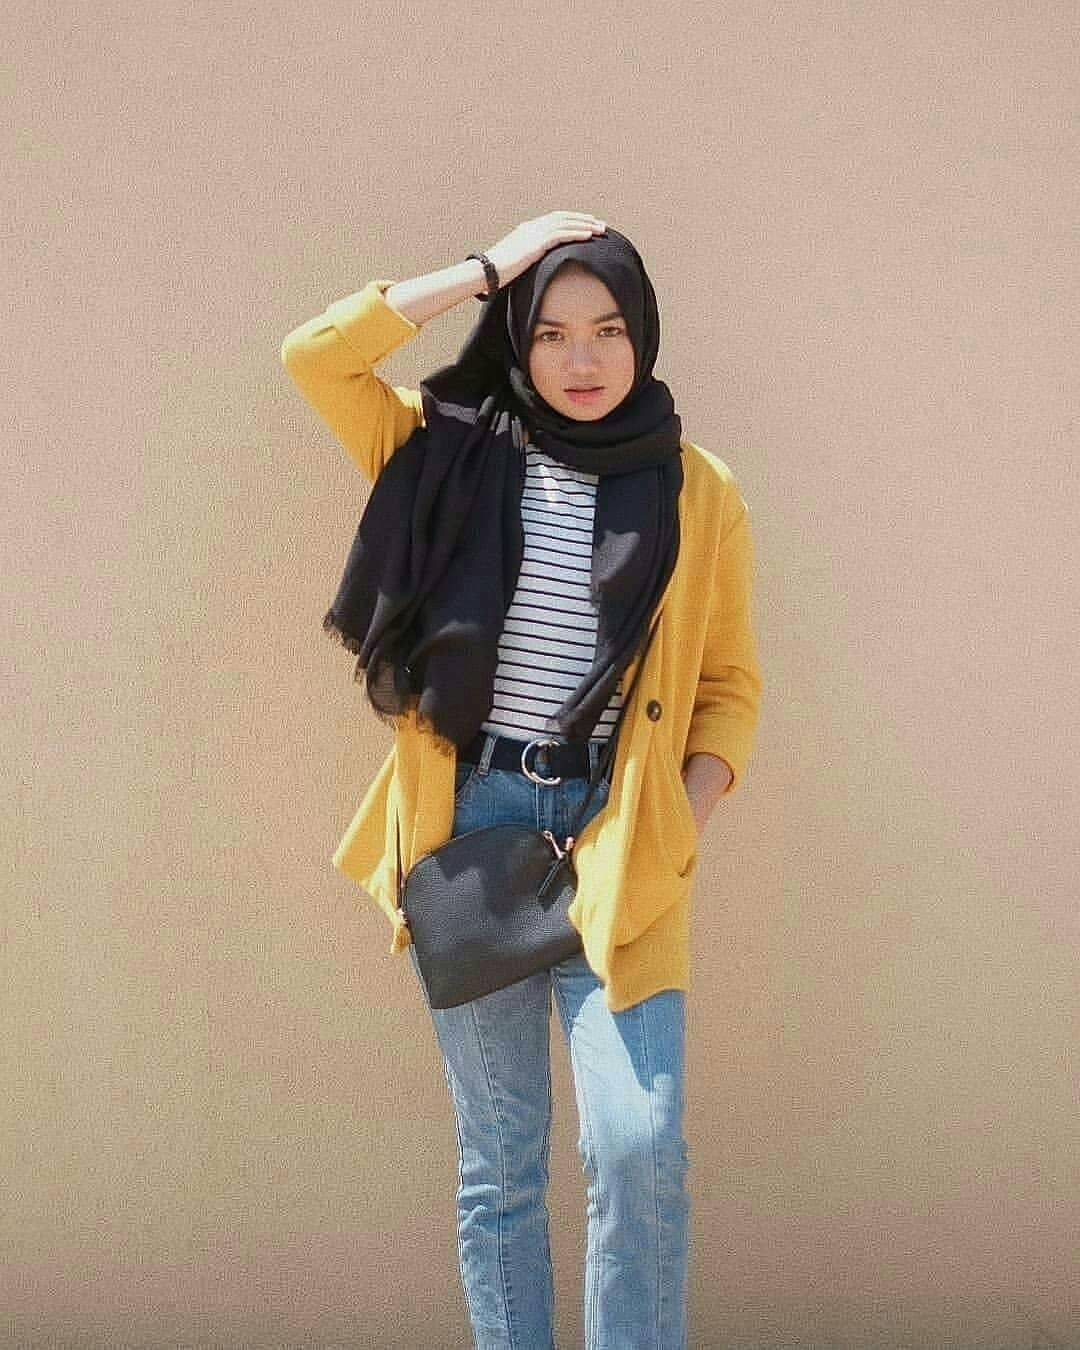 Nadyaaisha Instagram Inspired Simple Outfit Hijab Cool From The Day And Of Onhijab Of The Day On In Hijab Style Casual Simple Outfits Hijab Casual